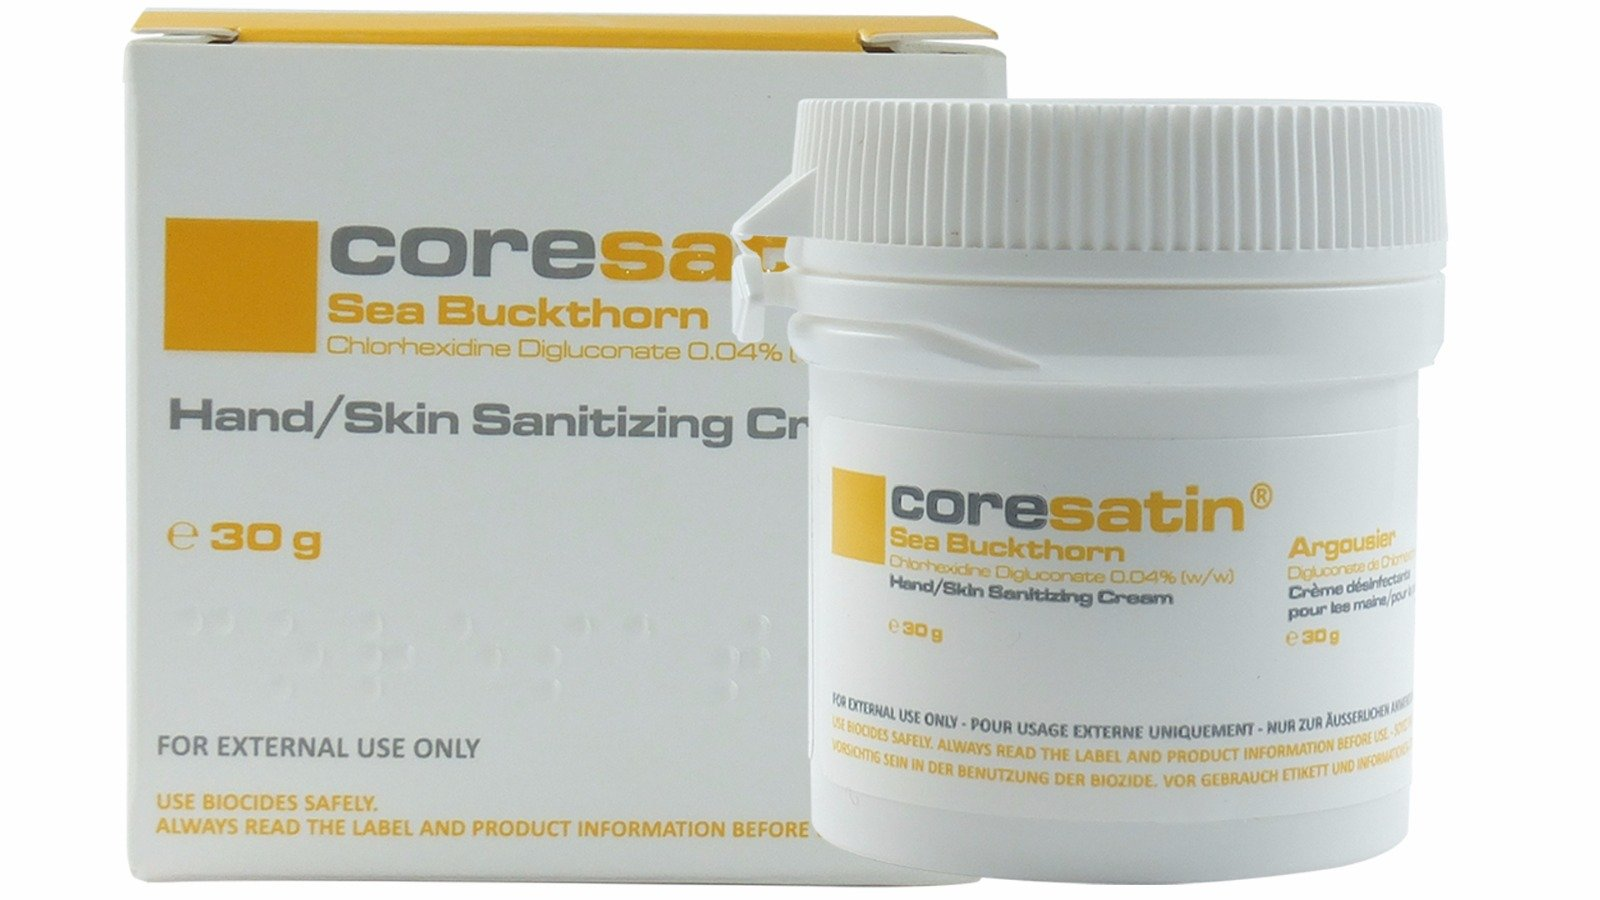 Coresatin Sea Buckthorn Hand Skin Sanitizing Cream; For all types of dry and sensitive skin and for those who may be prone to Dermatitis, Cellulitis, Eczema, Rosacea, Shingles, Stoma